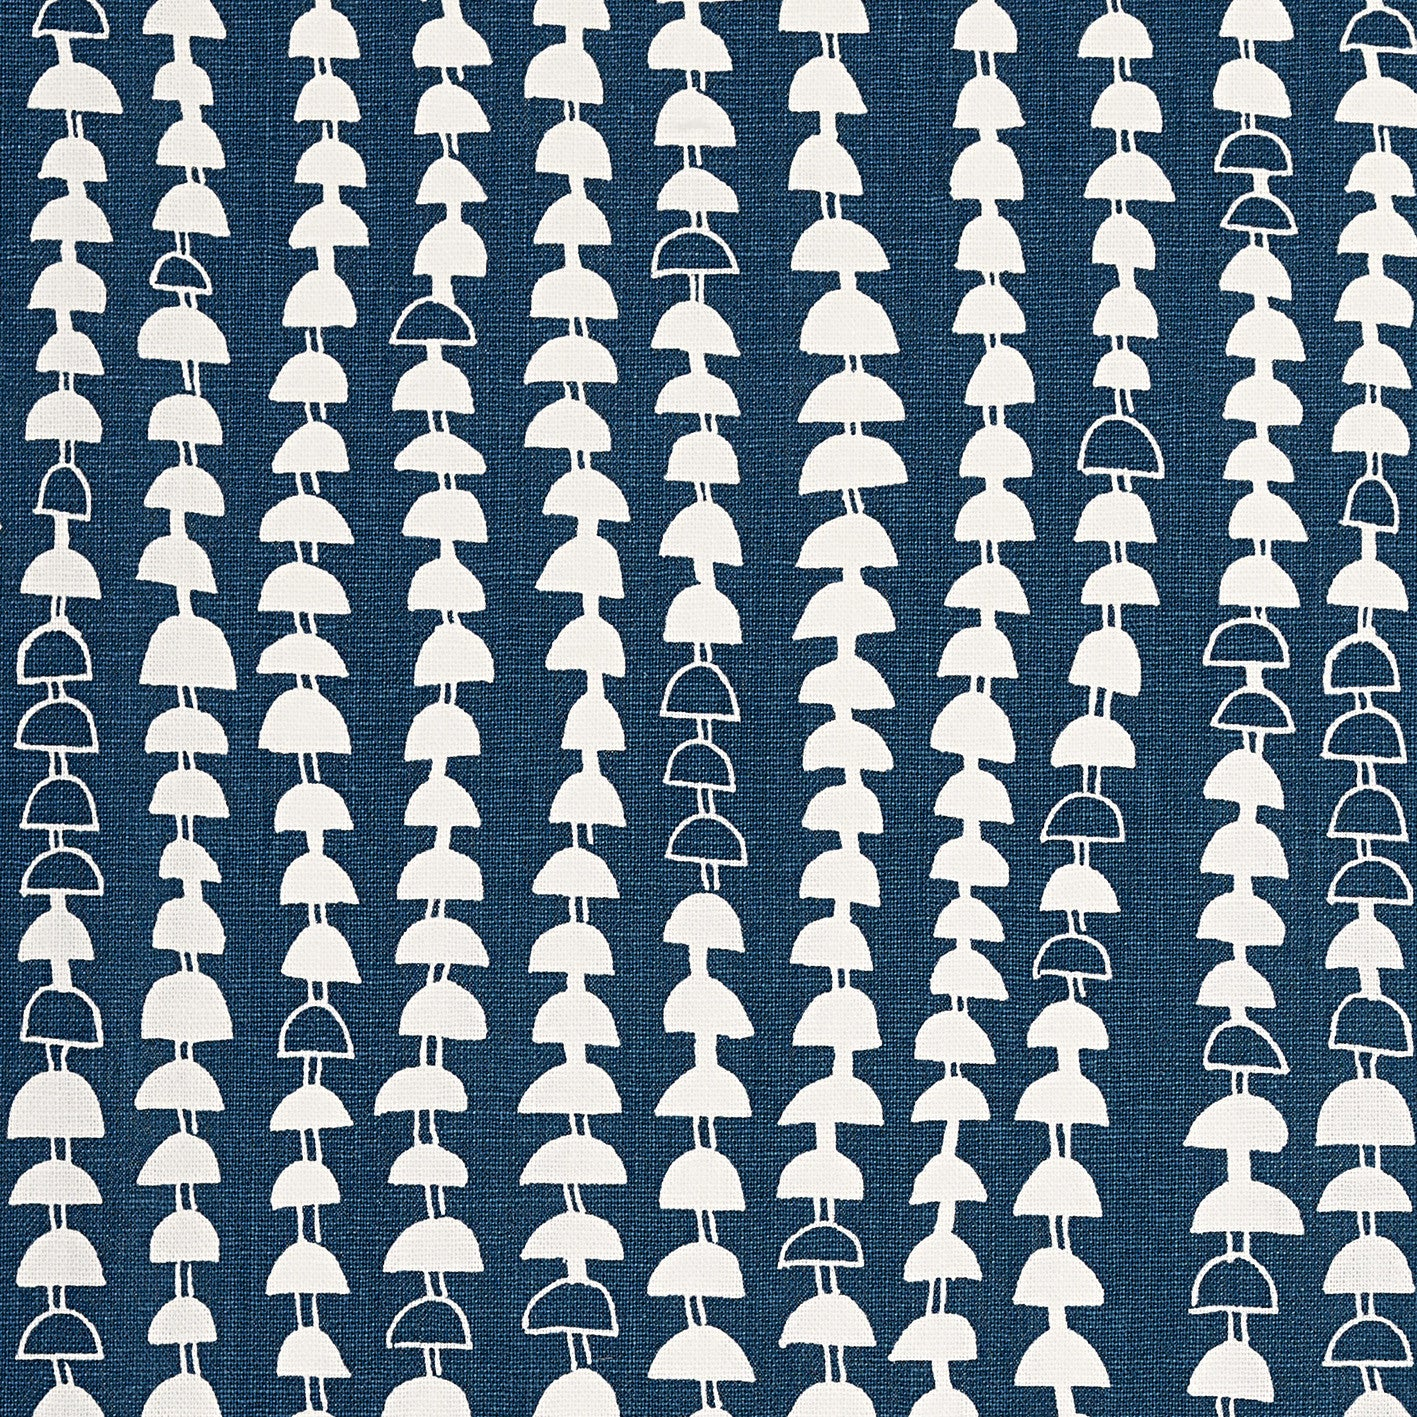 Hopi Graphic Strung Bead Pattern Cotton Linen & Canvas Fabric in Dark Petrol Blue